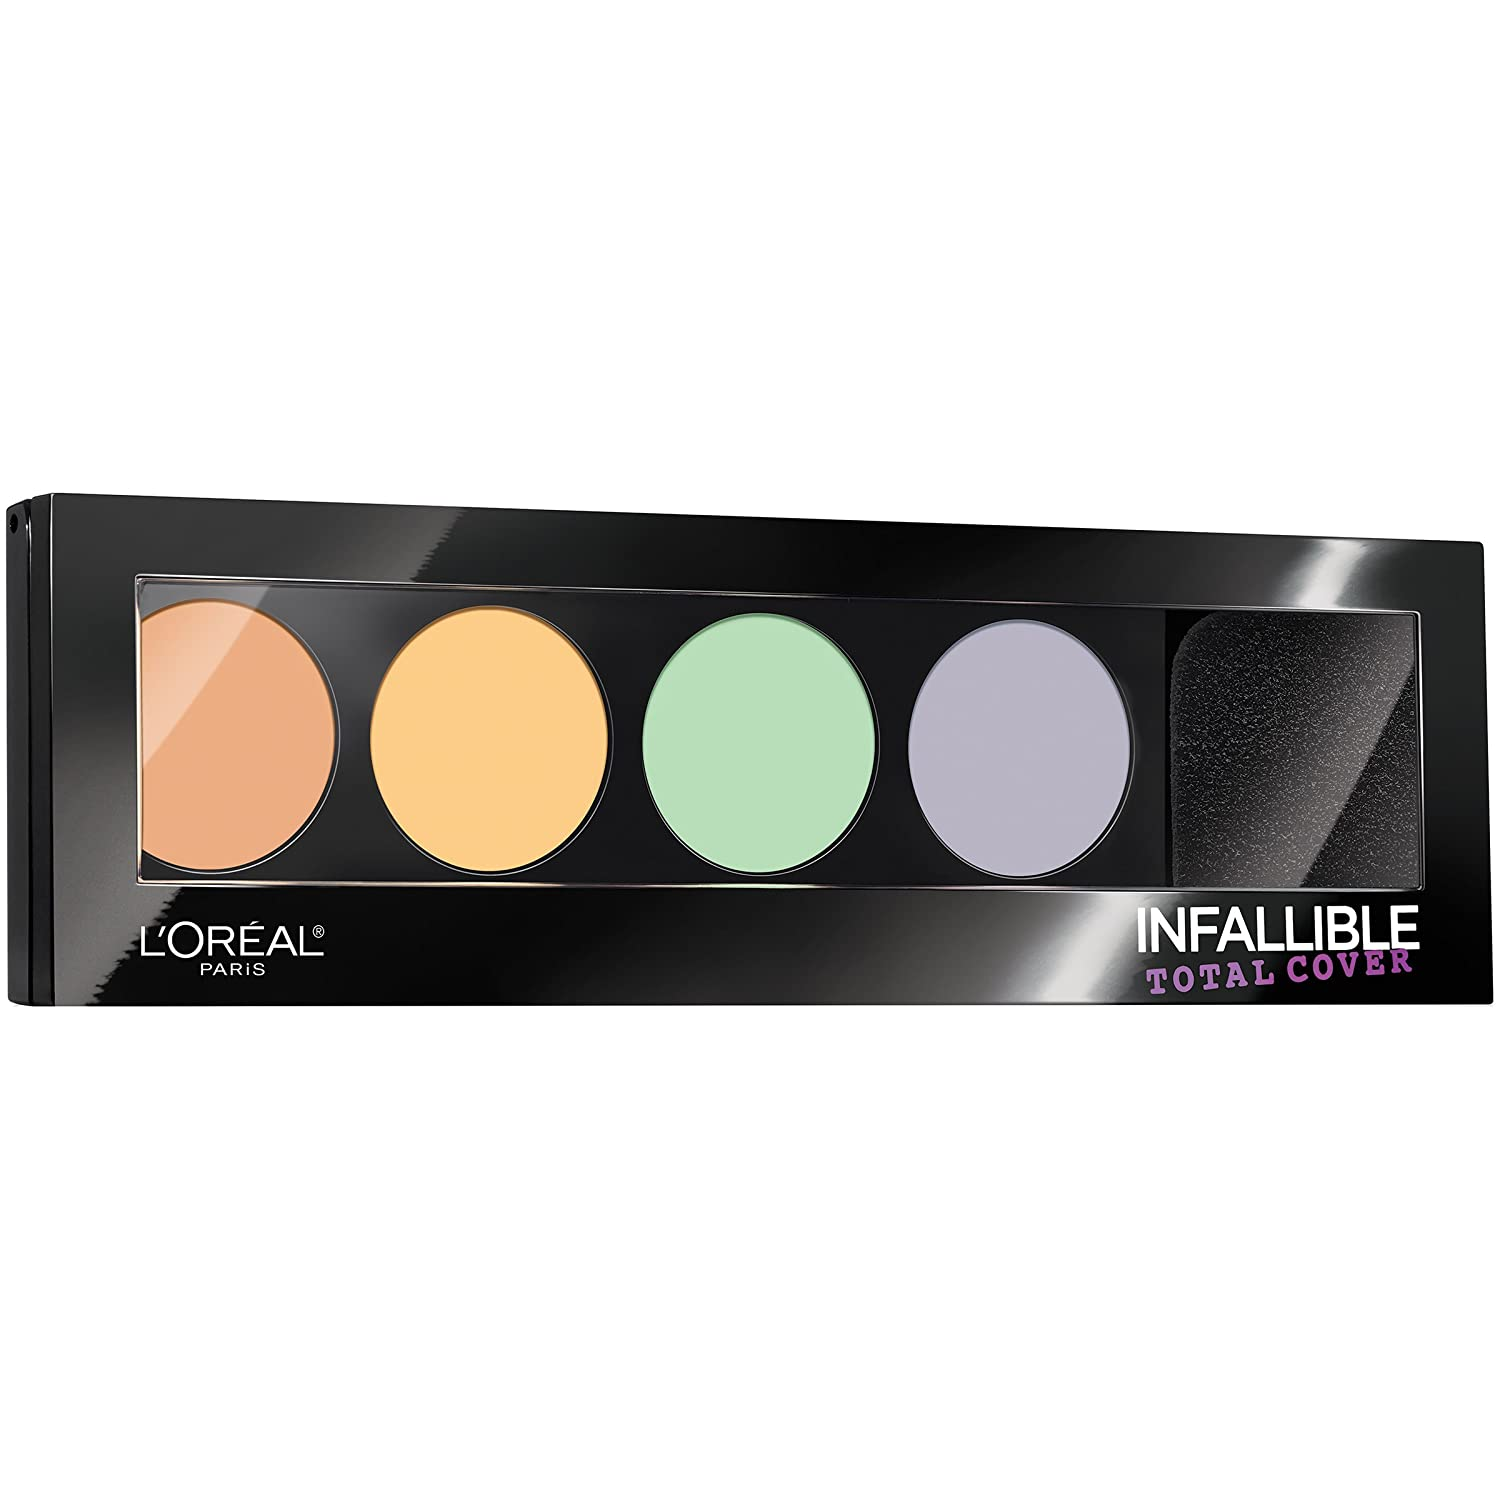 L'Oreal Paris Infallible total cover color correcting kit (220), 0.17 Ounce L' Oreal Paris